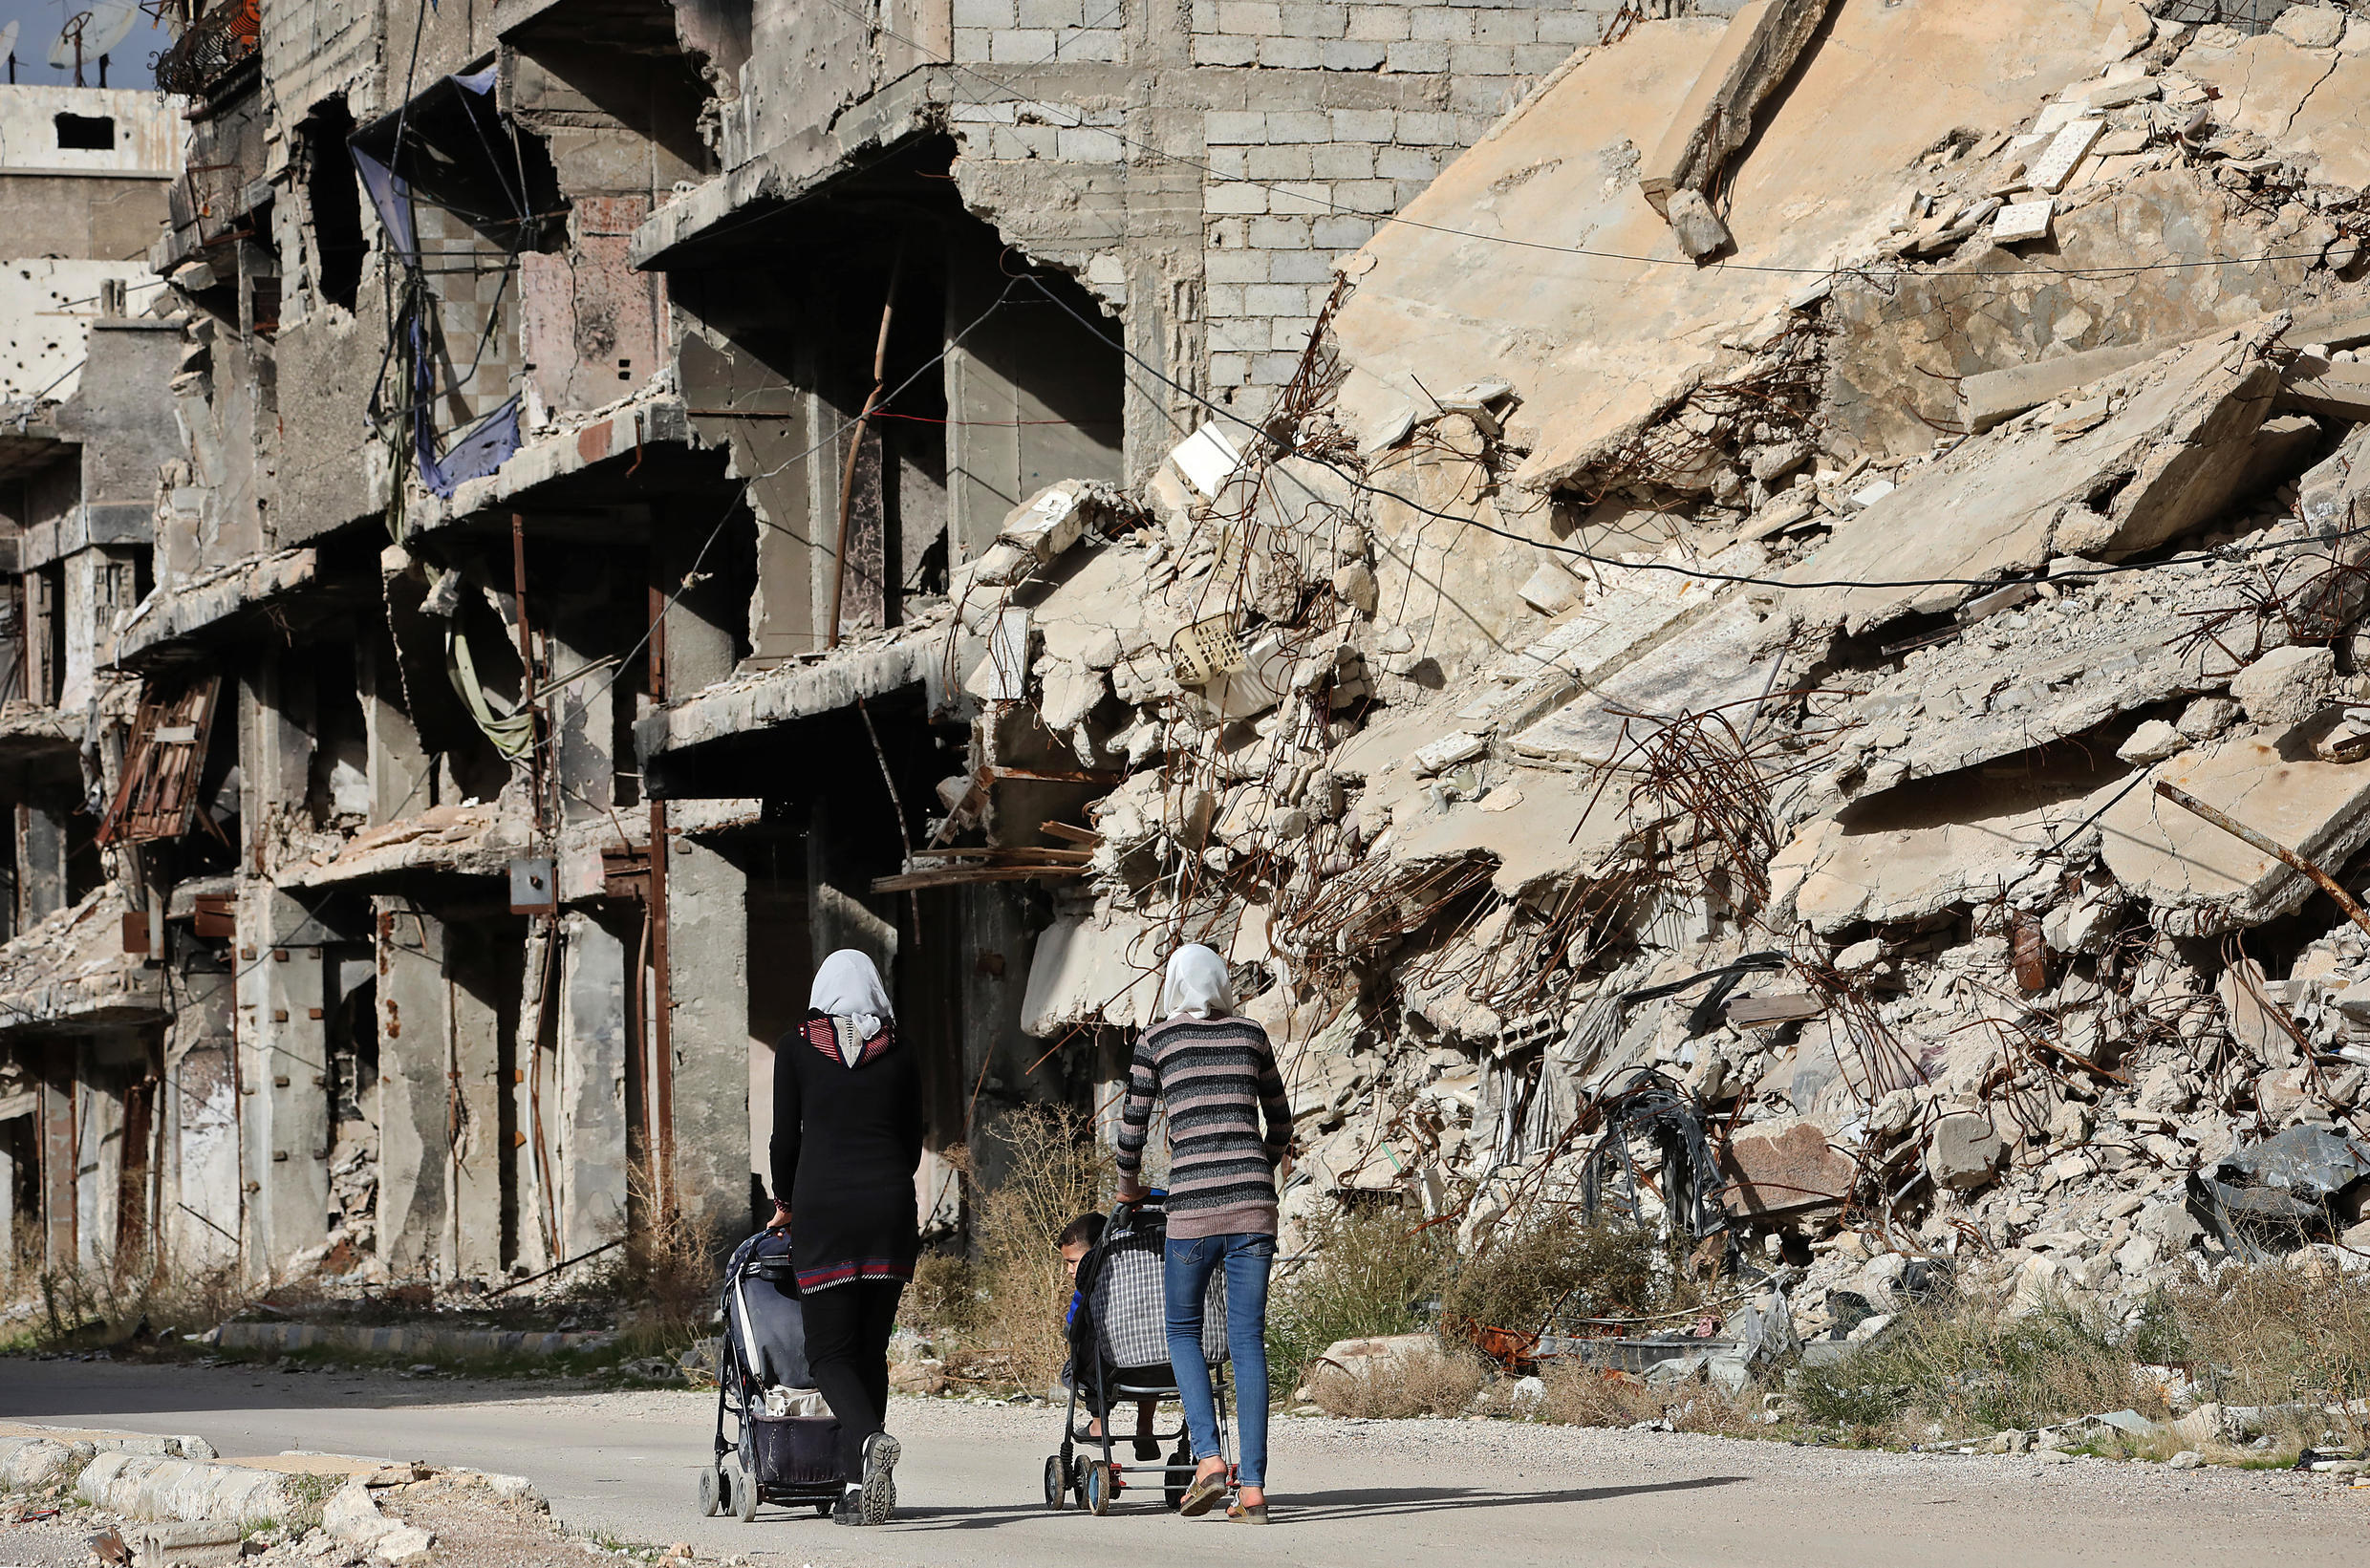 Millions more people in Syria and abroad need help this year, even though violence has fallen